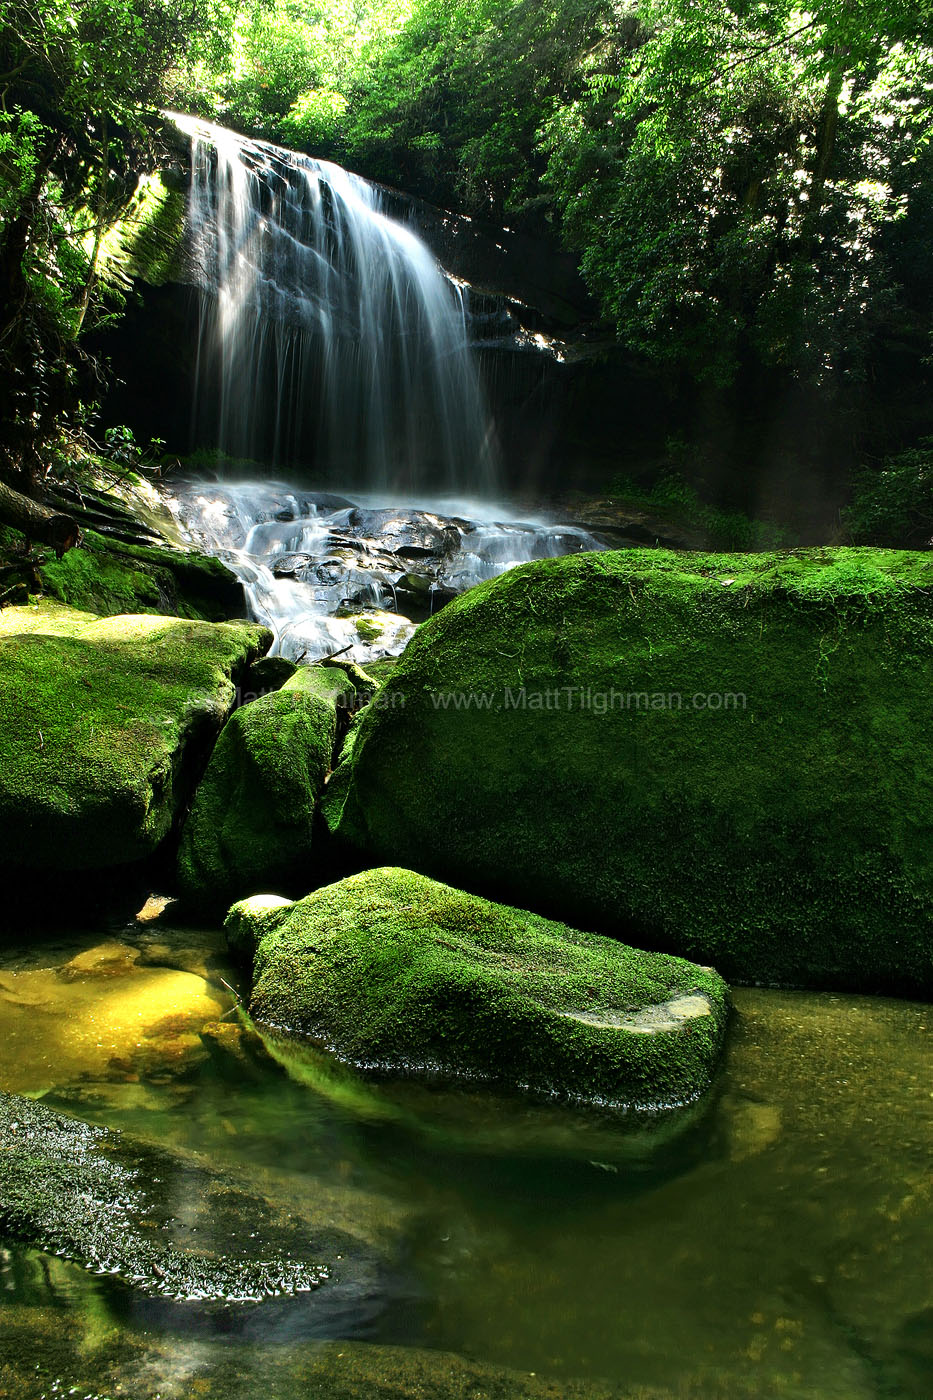 Fine art stock photograph of Charlie Falls in the Appalachian Mountains of North Carolina, in the lush forests of the Highlands Plateau.